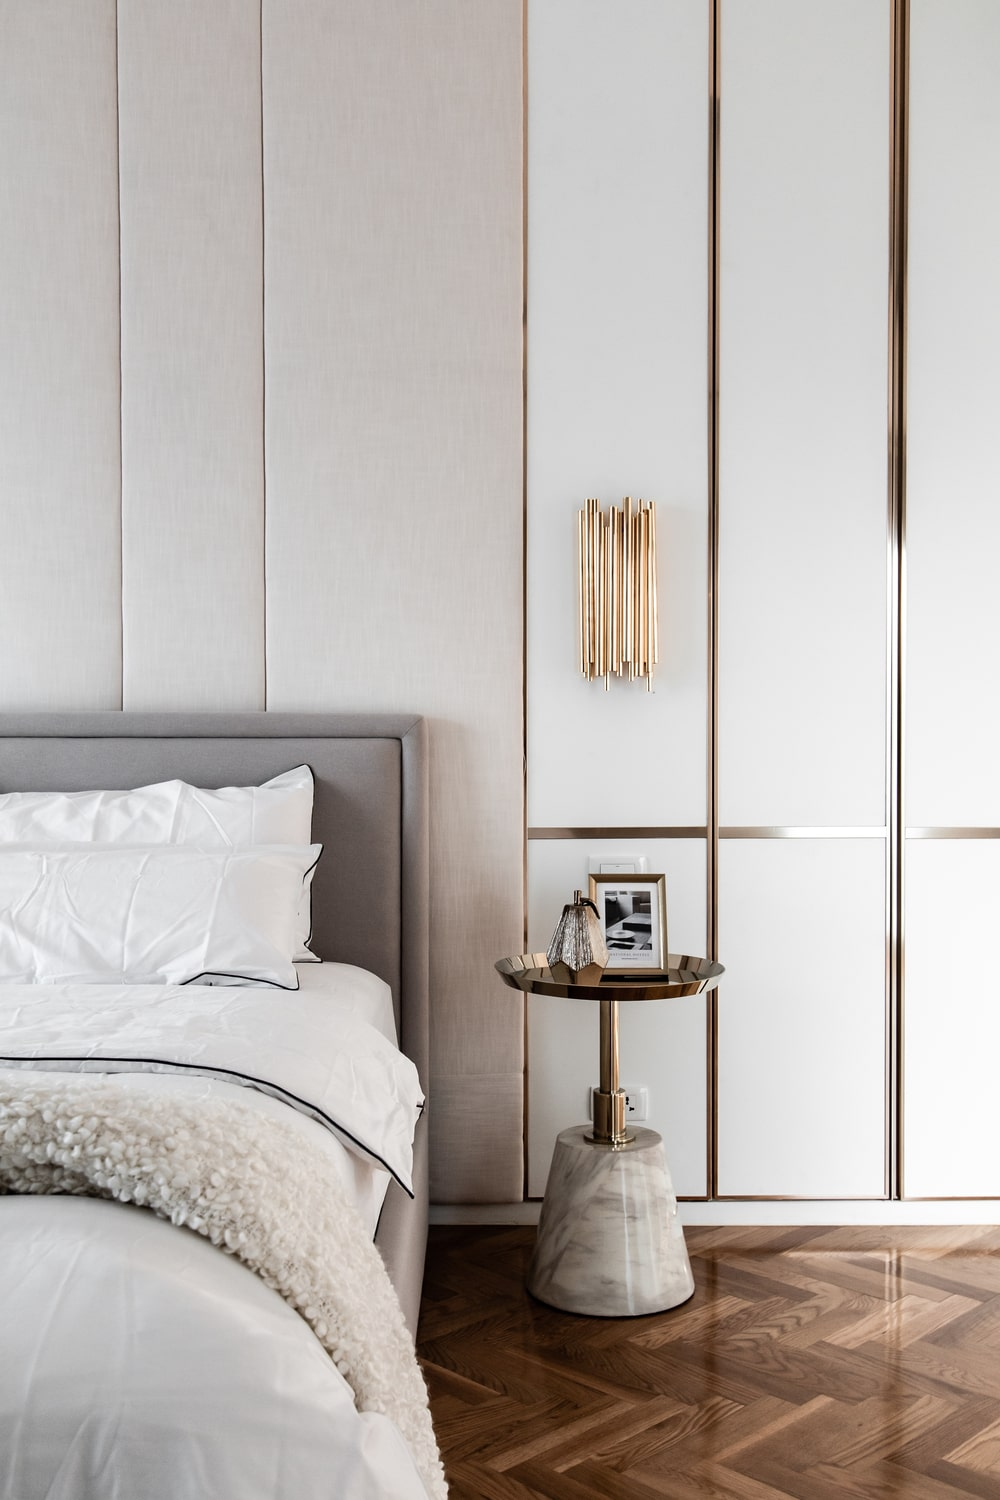 The bed also has small round bedside tables in a metallic tone to match the wall accents.